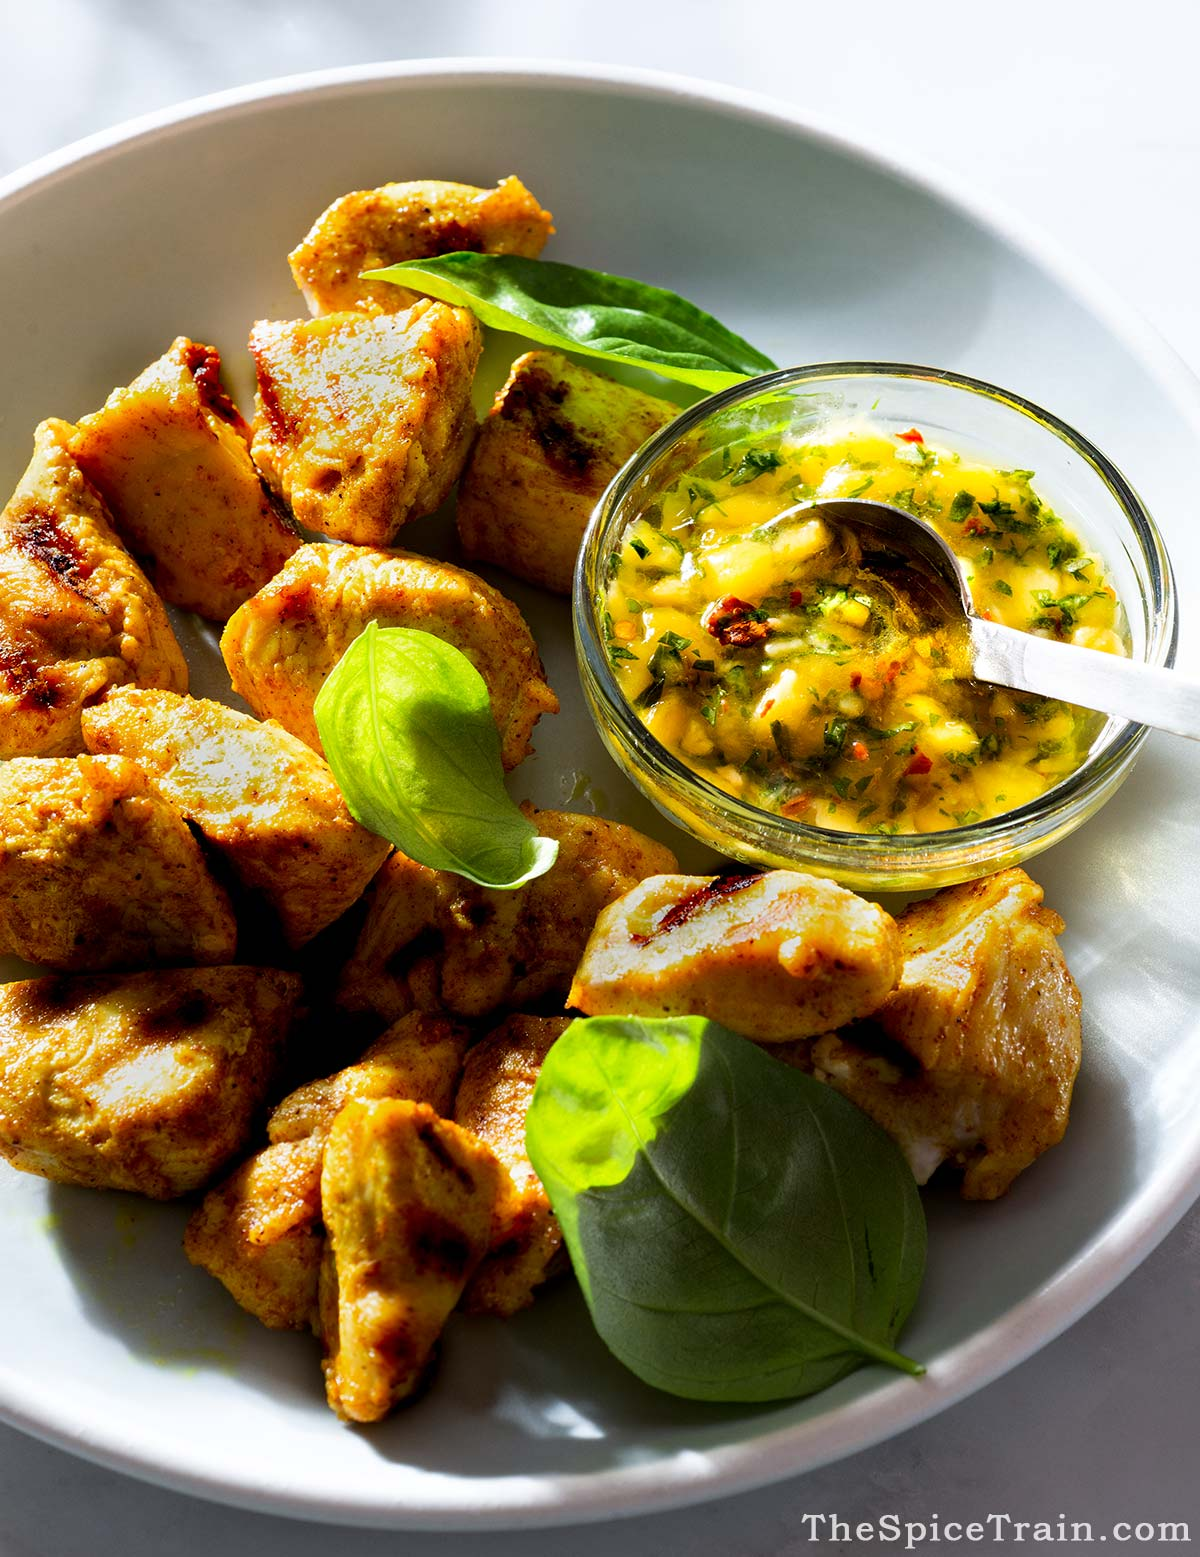 Curry-marinated grilled chicken chunks with mango basil sauce.